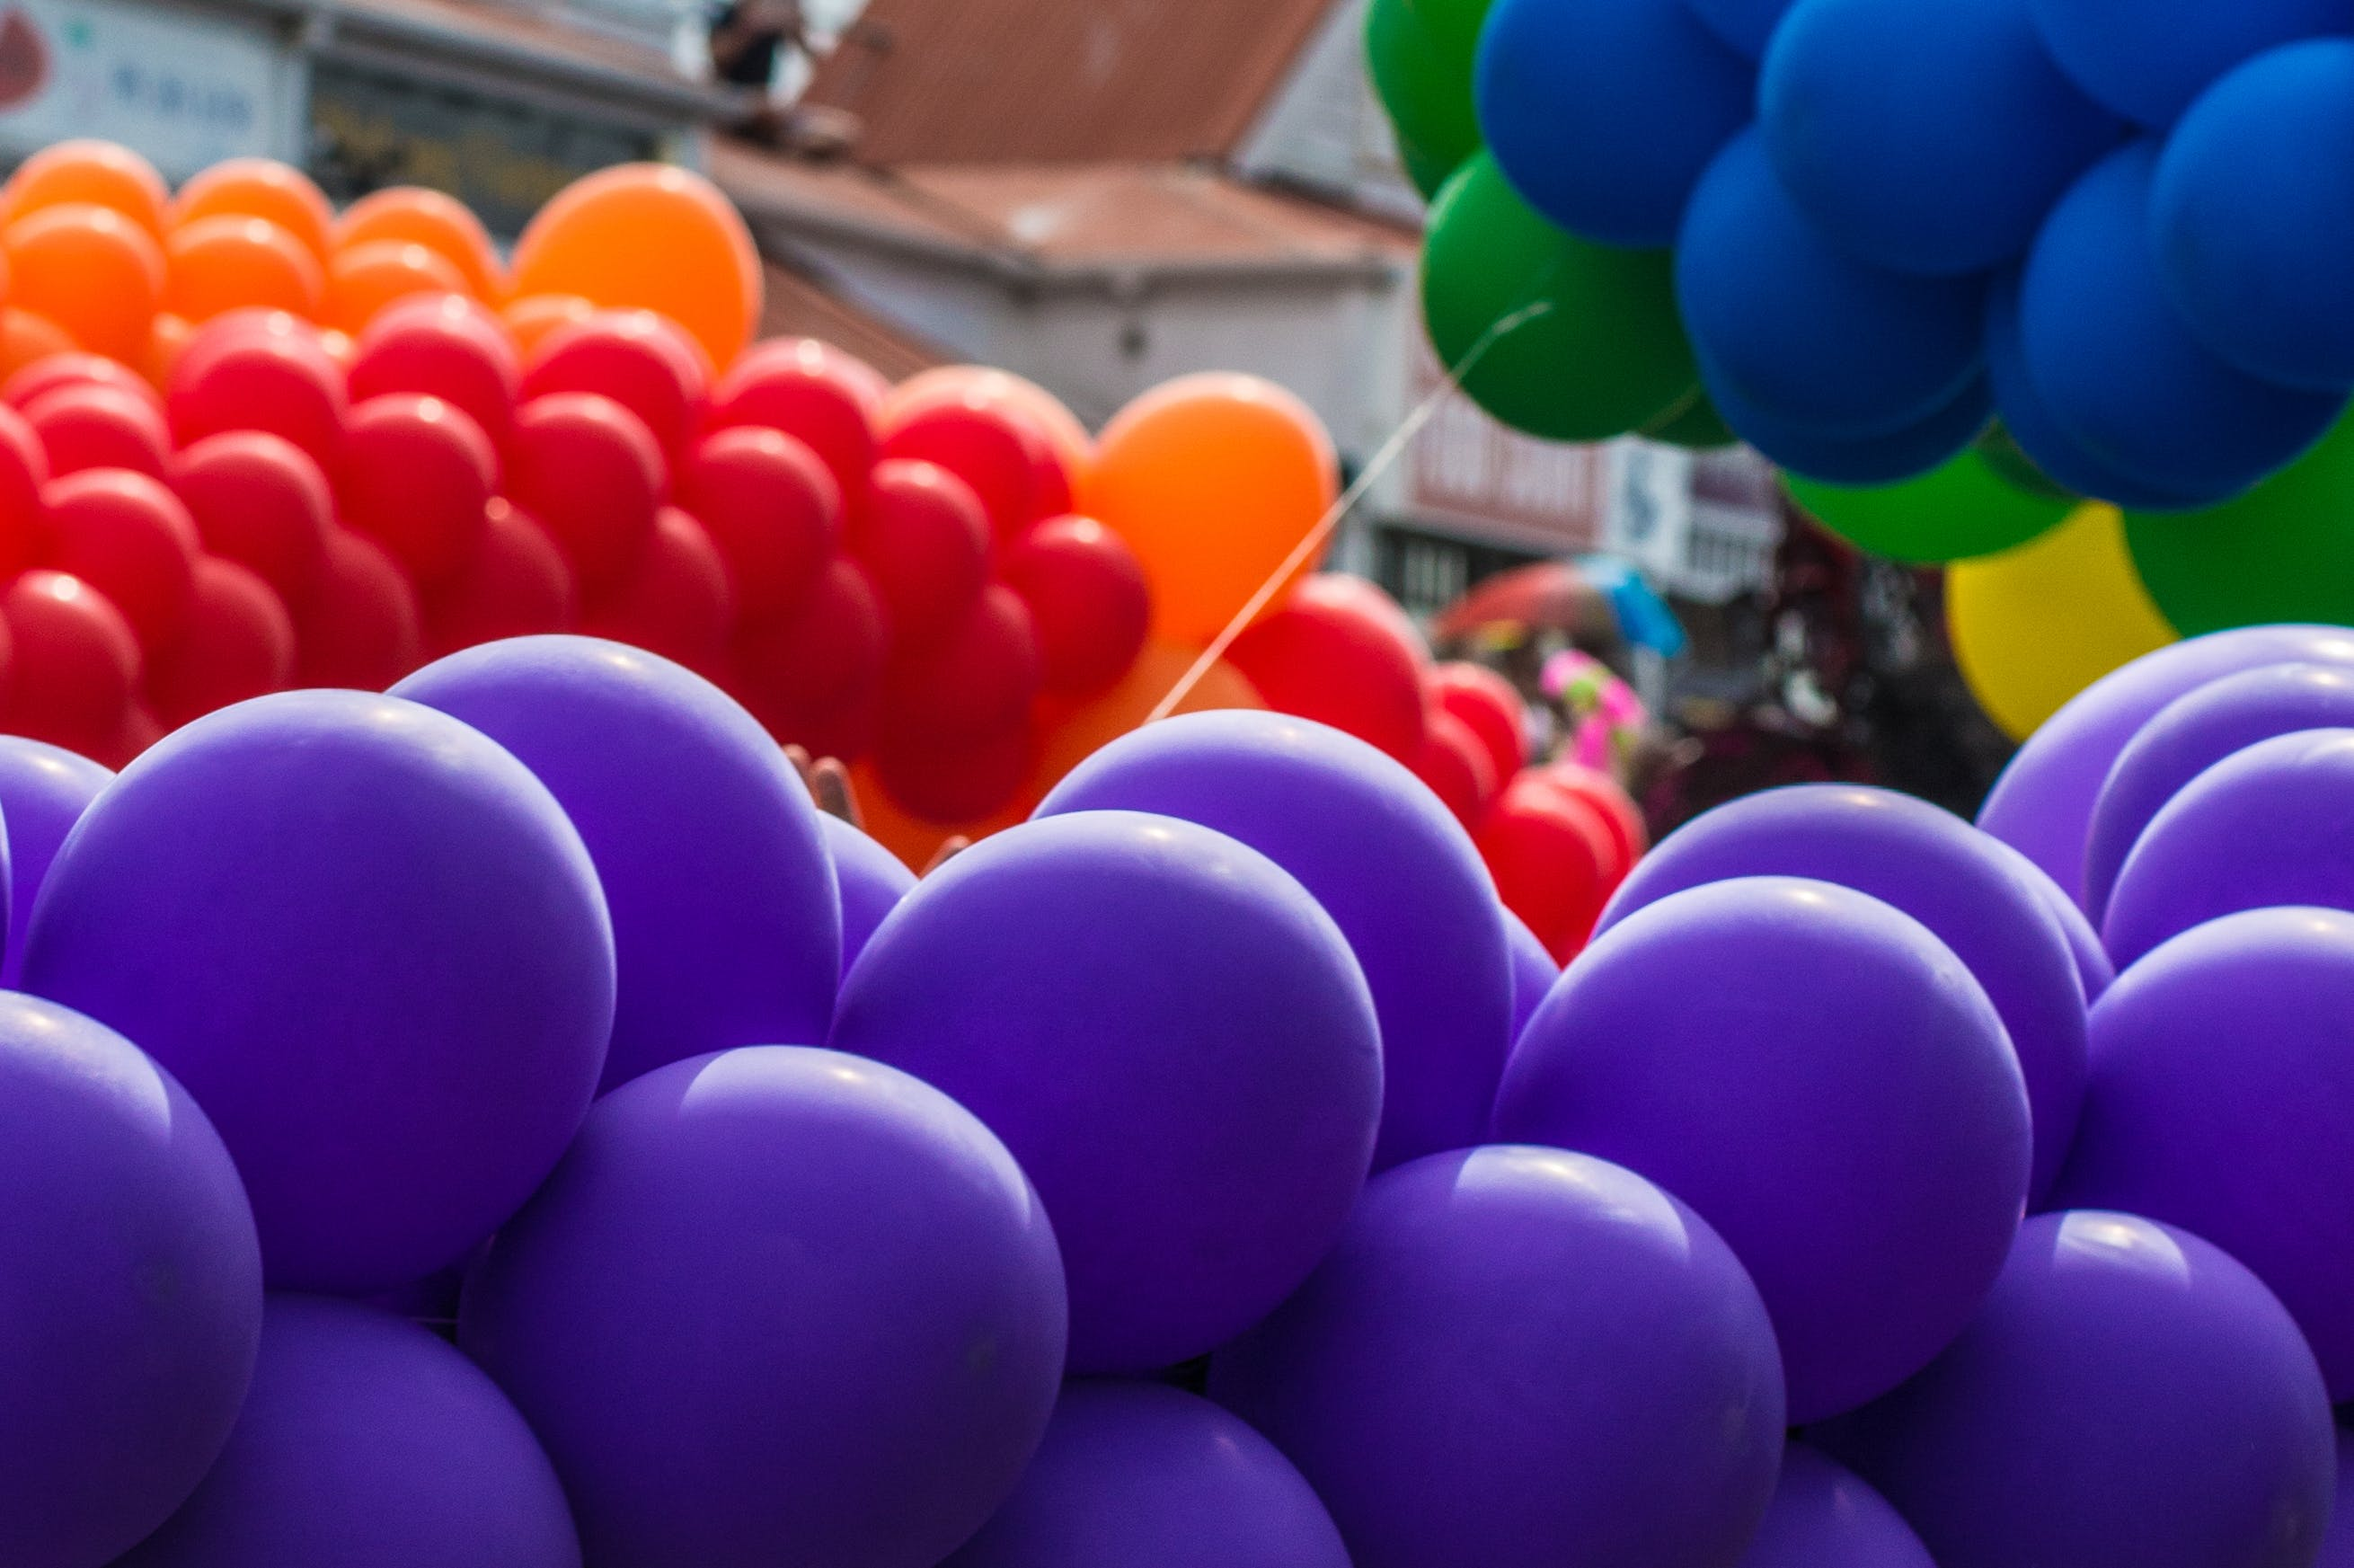 Free stock photo of festive, party, colorful, balloon